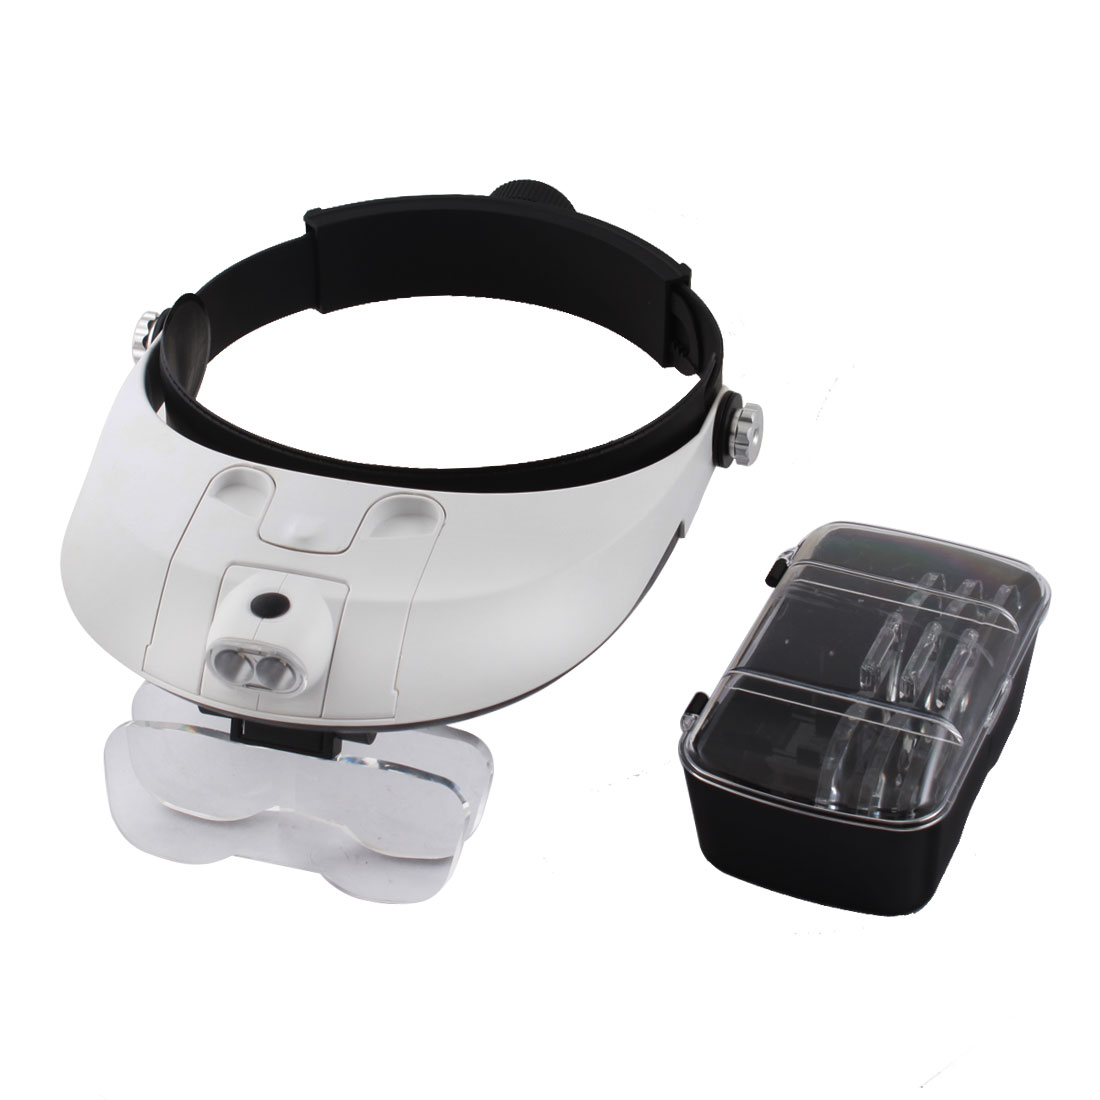 2-LED Head Light Adjustable Headband Magnifier Lens w 5Lens Set